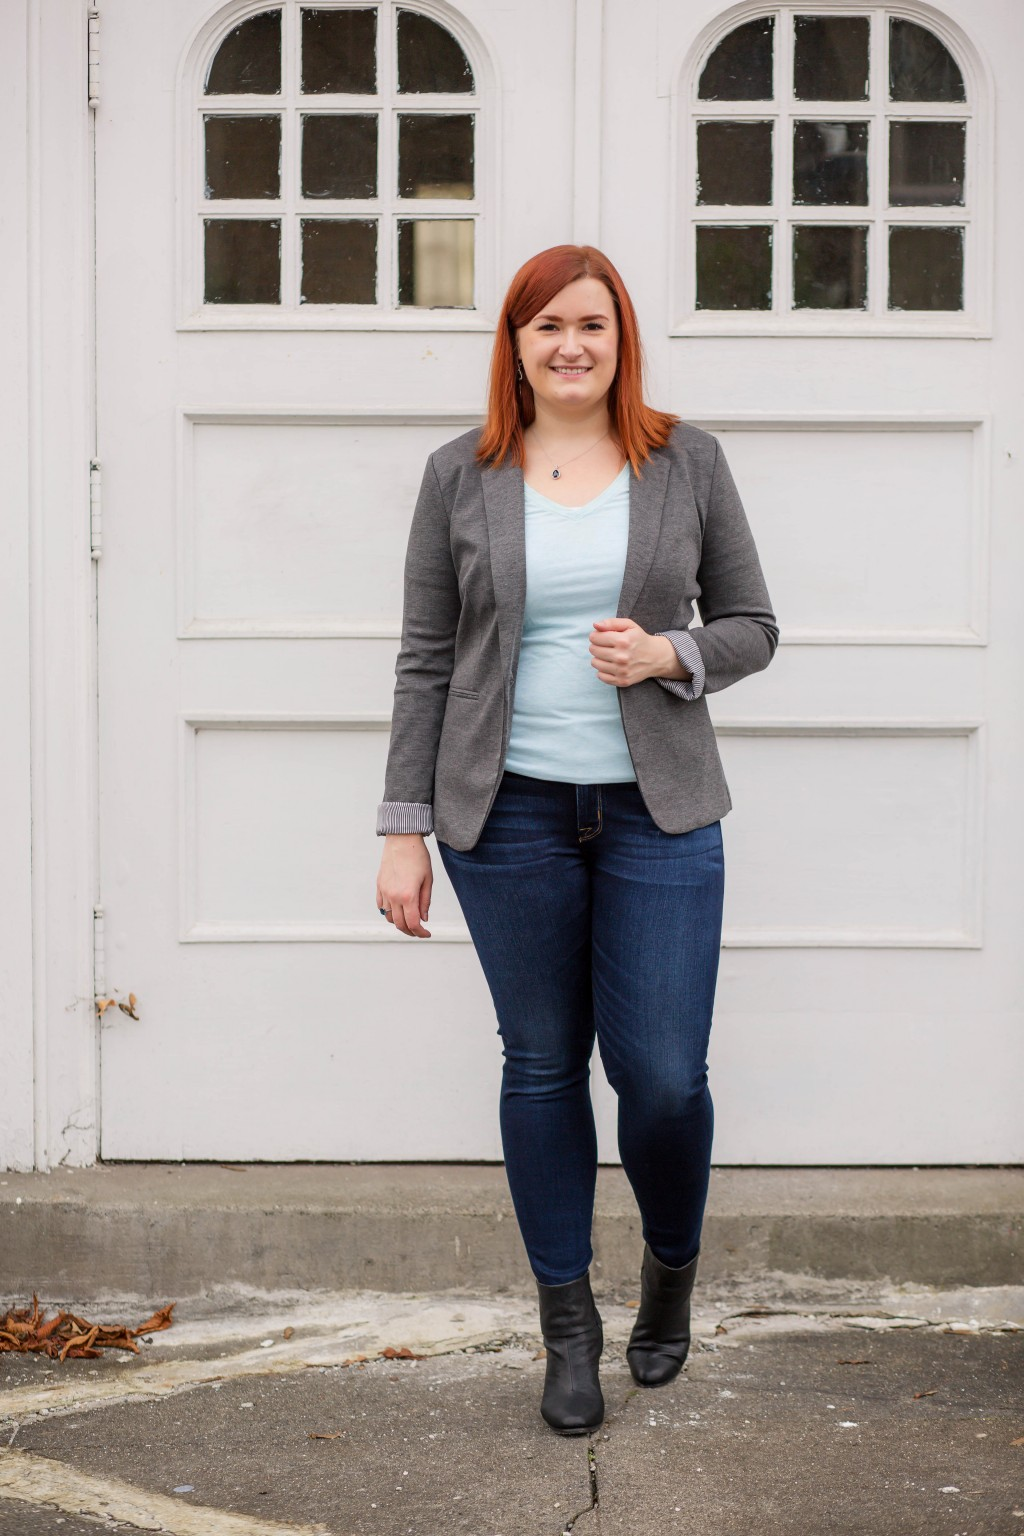 12-kate-retherford-of-all-things-kate-seattle-style-blogger